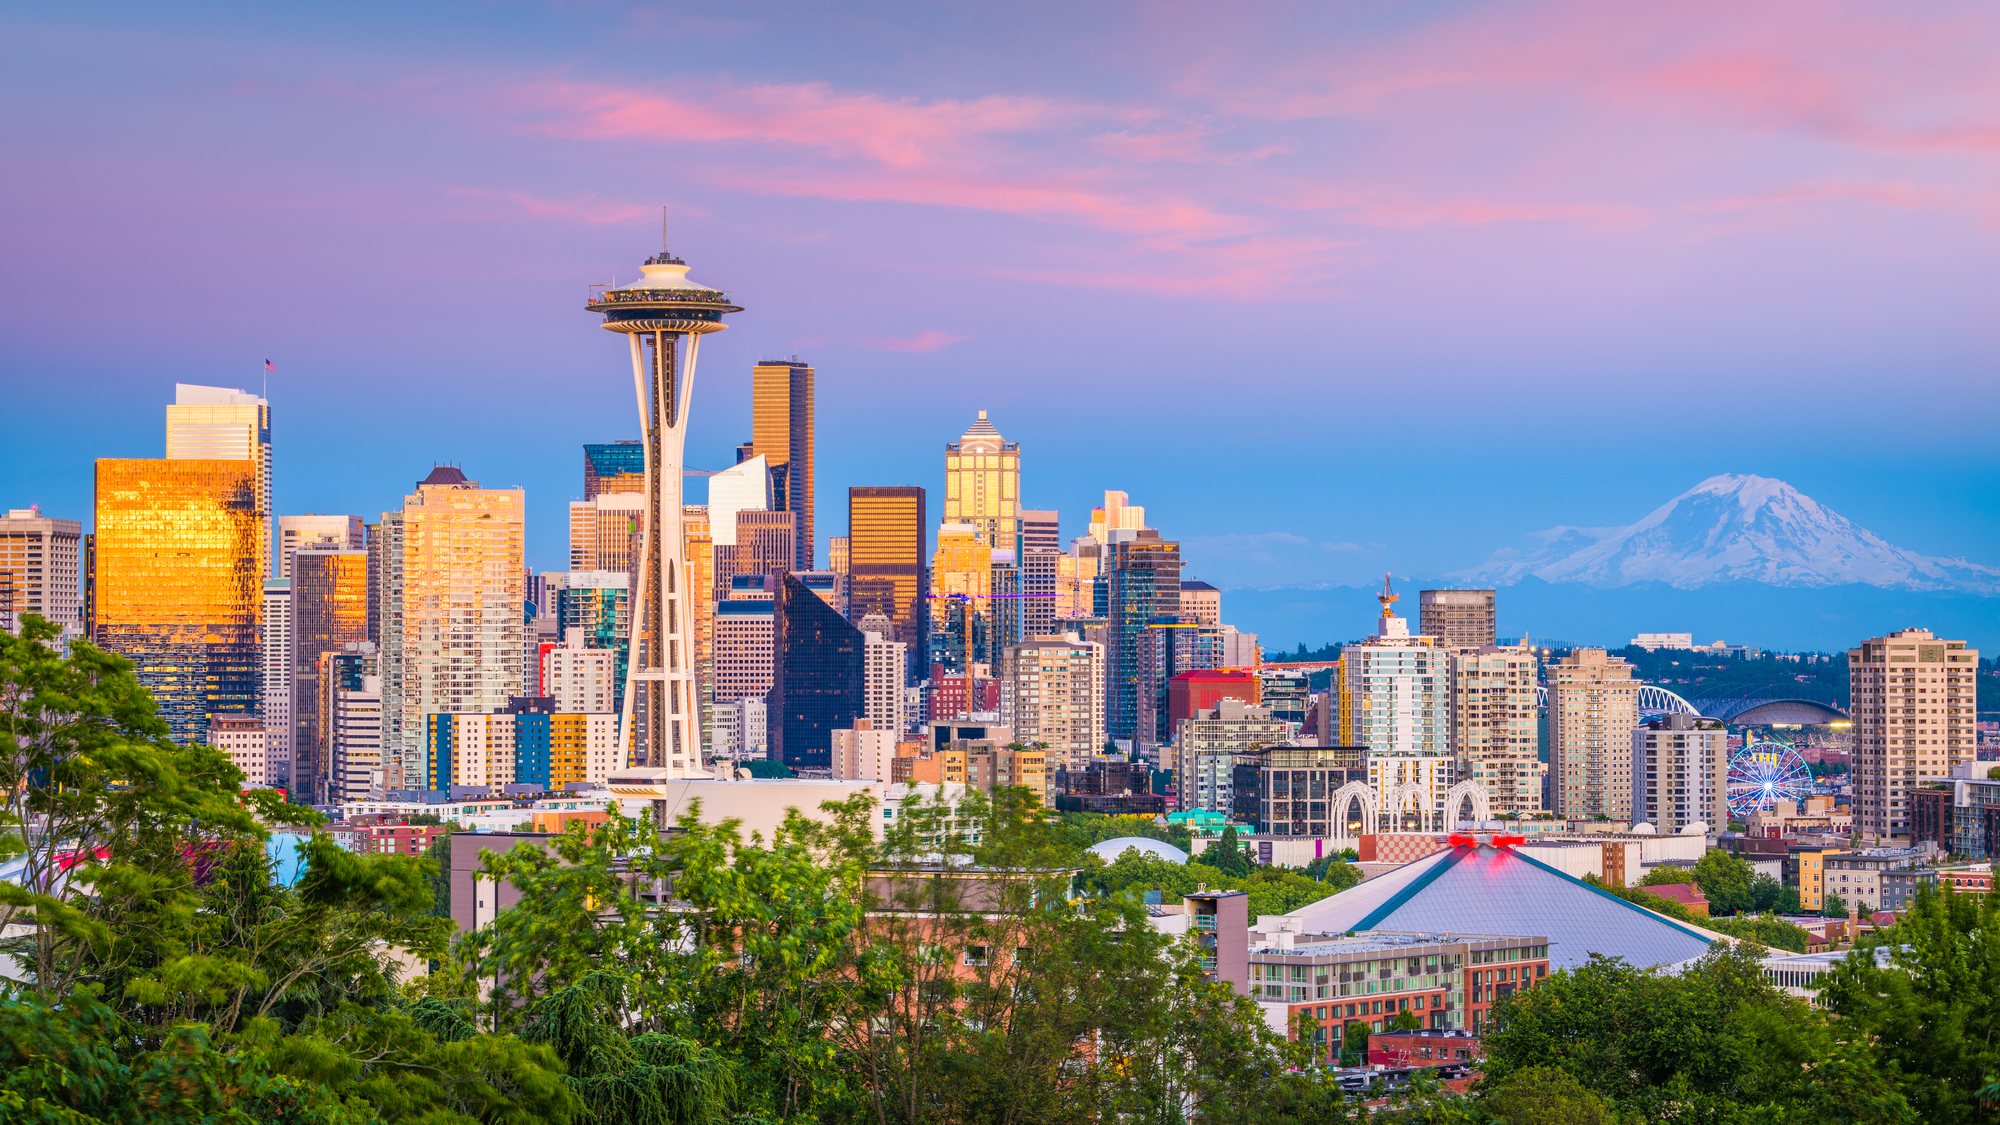 Identifying New Properties: What Seattle Neighborhoods Should You Invest In?